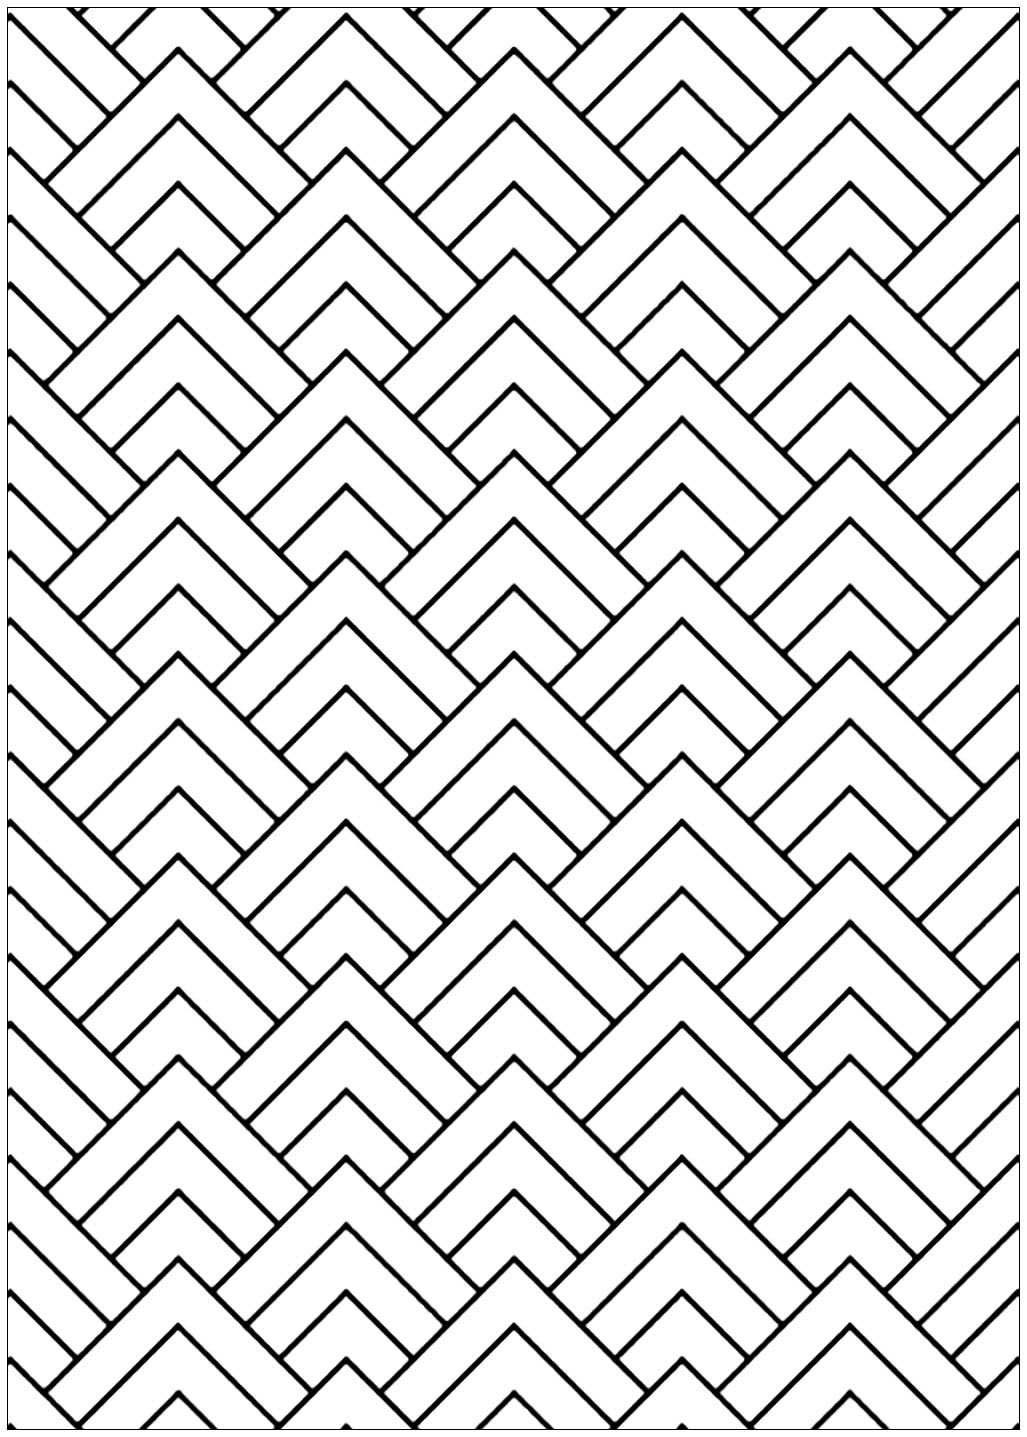 Triangular Shapes Optical Illusions Op Art Adult Coloring Pages